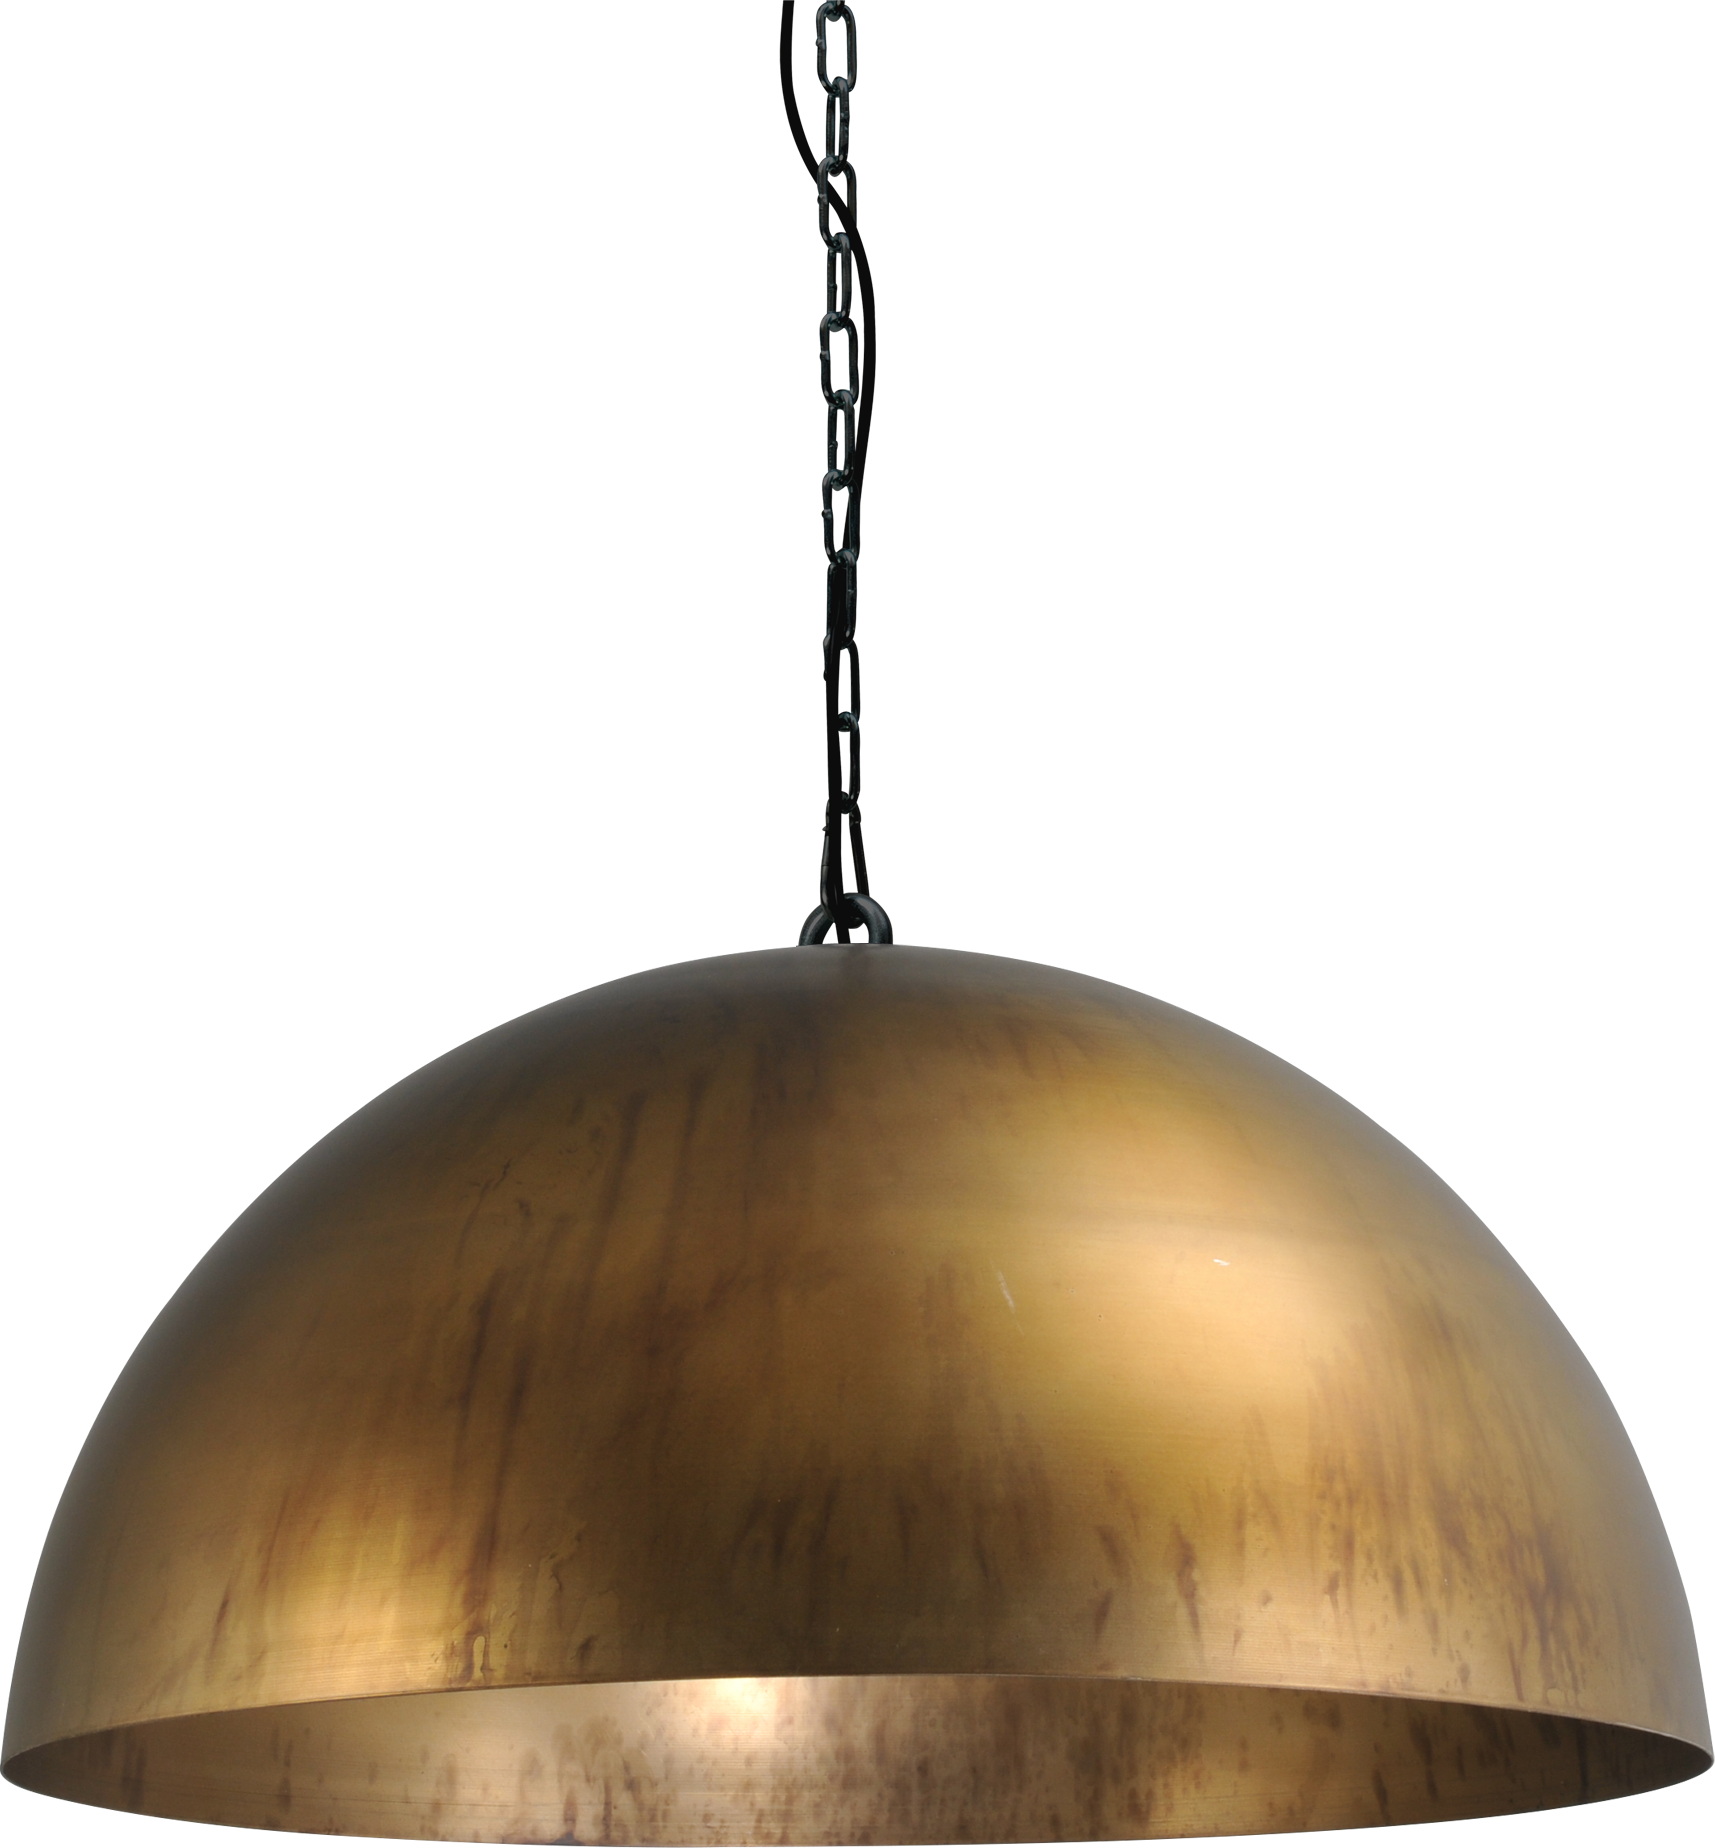 Larino Antique Brass HL LARINO Ø60CM ANTIQUE BRASS OUTSIDE